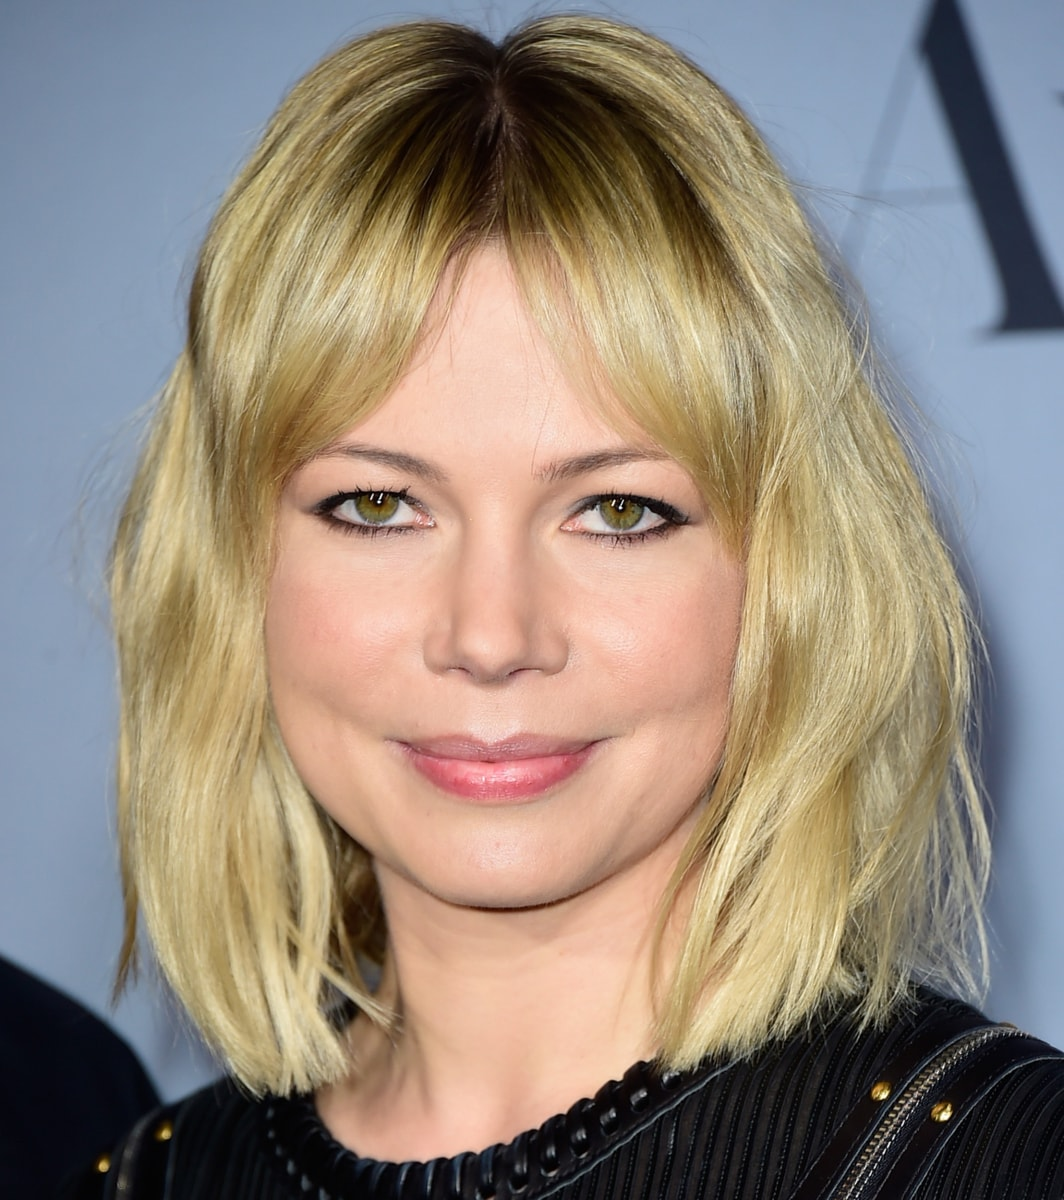 Short hairstyles inspired by celebrity dos - TODAY.com